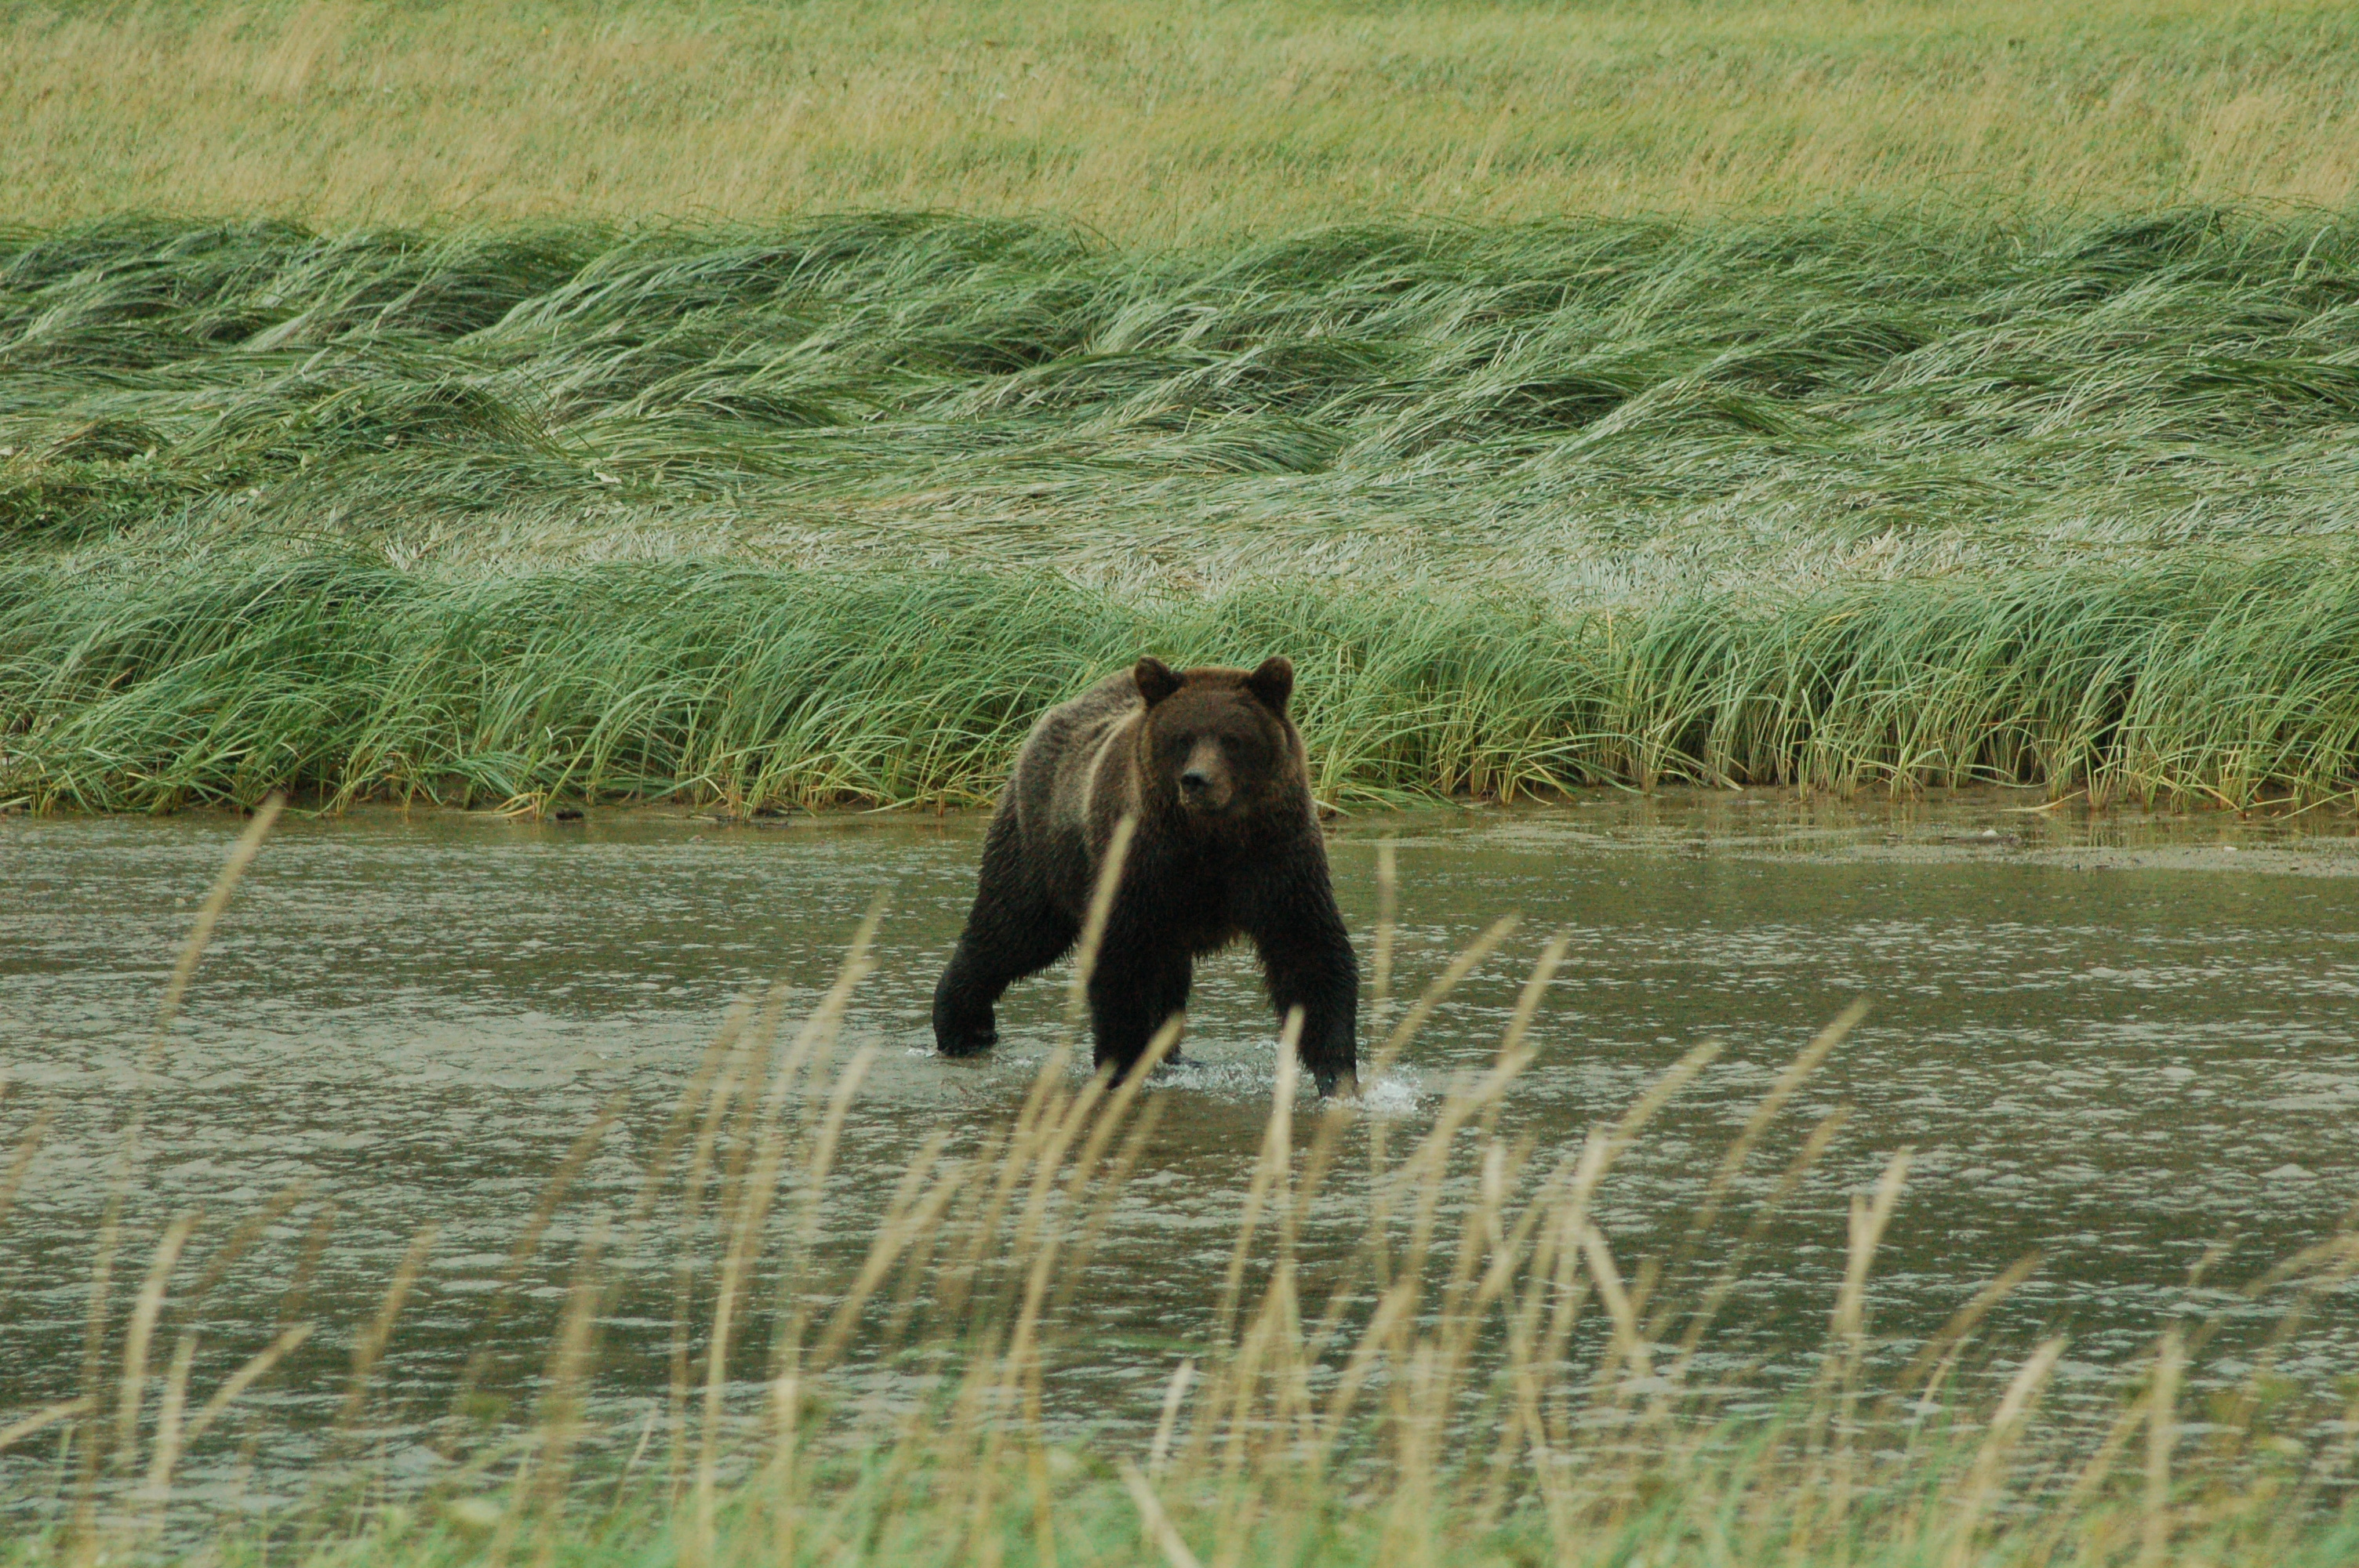 Modern photo of a brown bear crossing water in a field